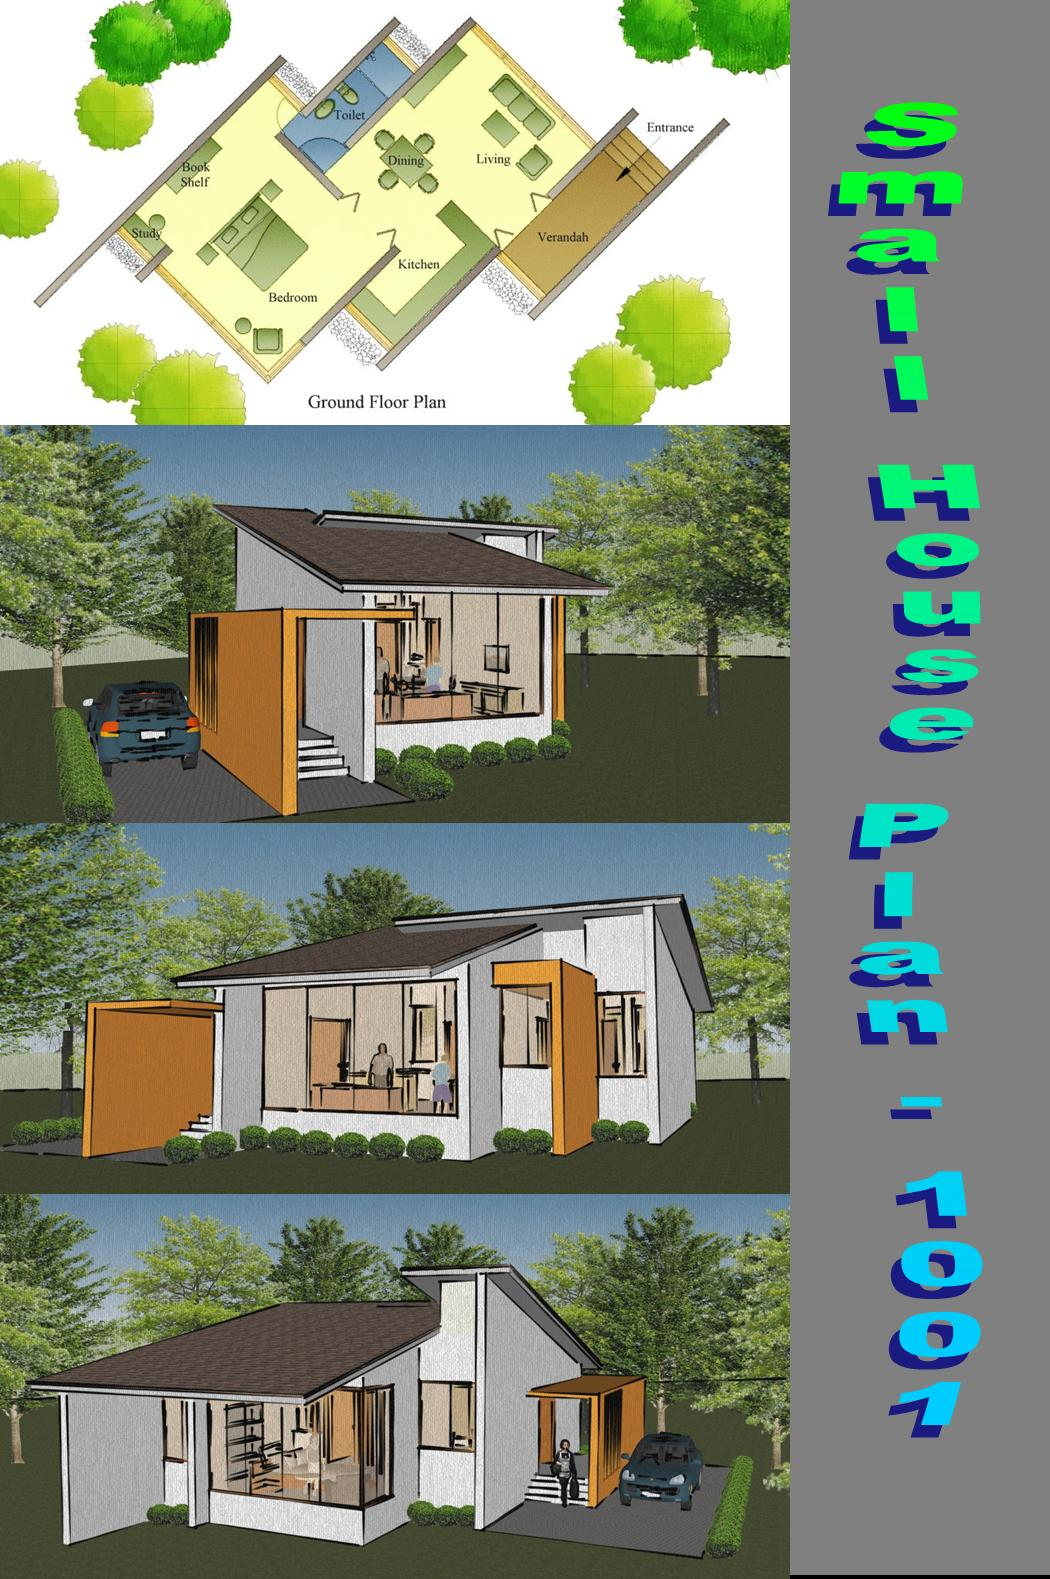 Home plans in india 5 best small home plans from for Hous plans